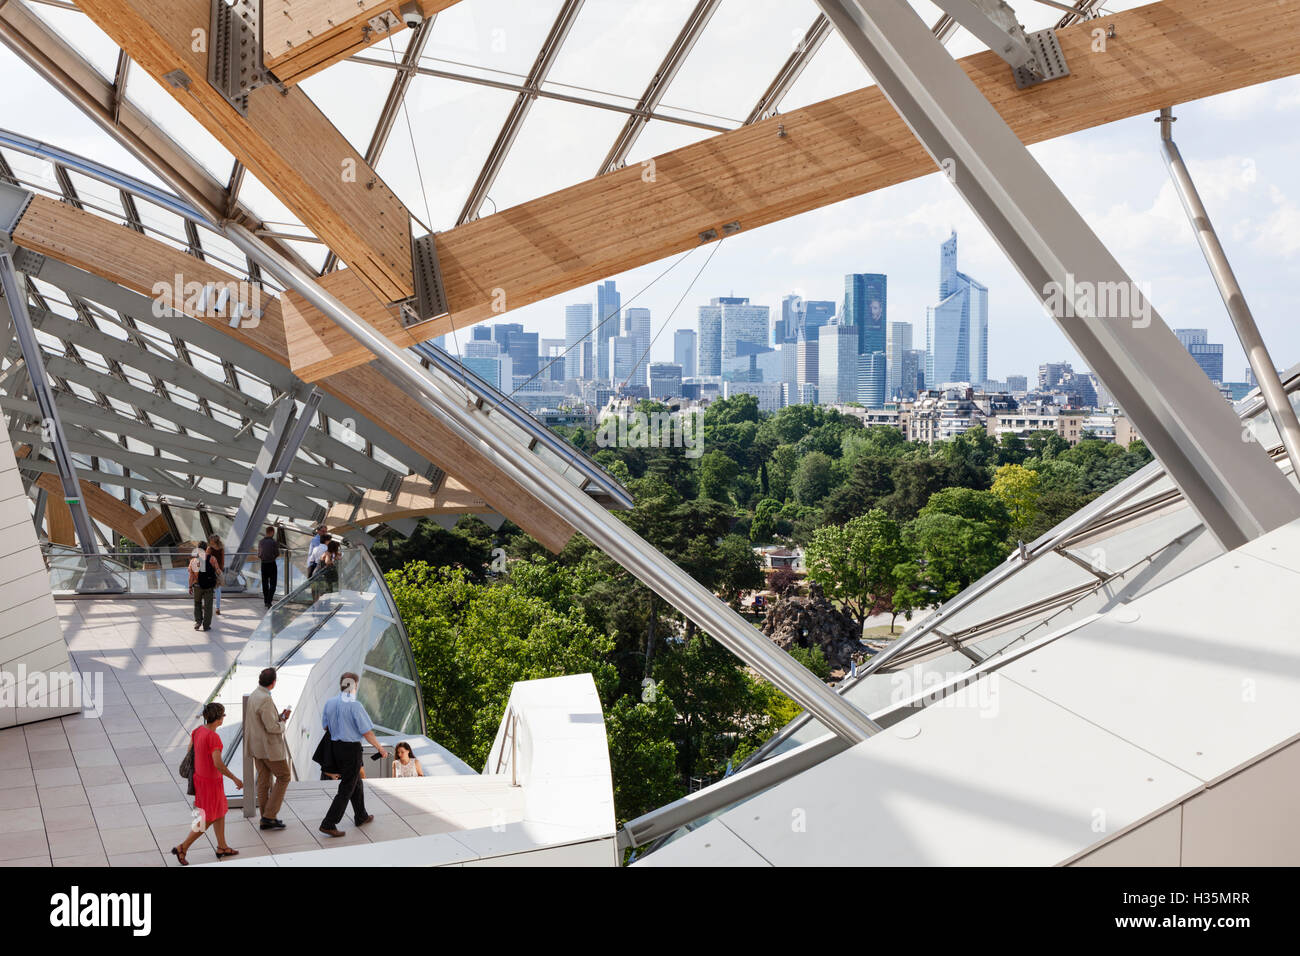 3e86f566195c0 Fondation Louis Vuitton